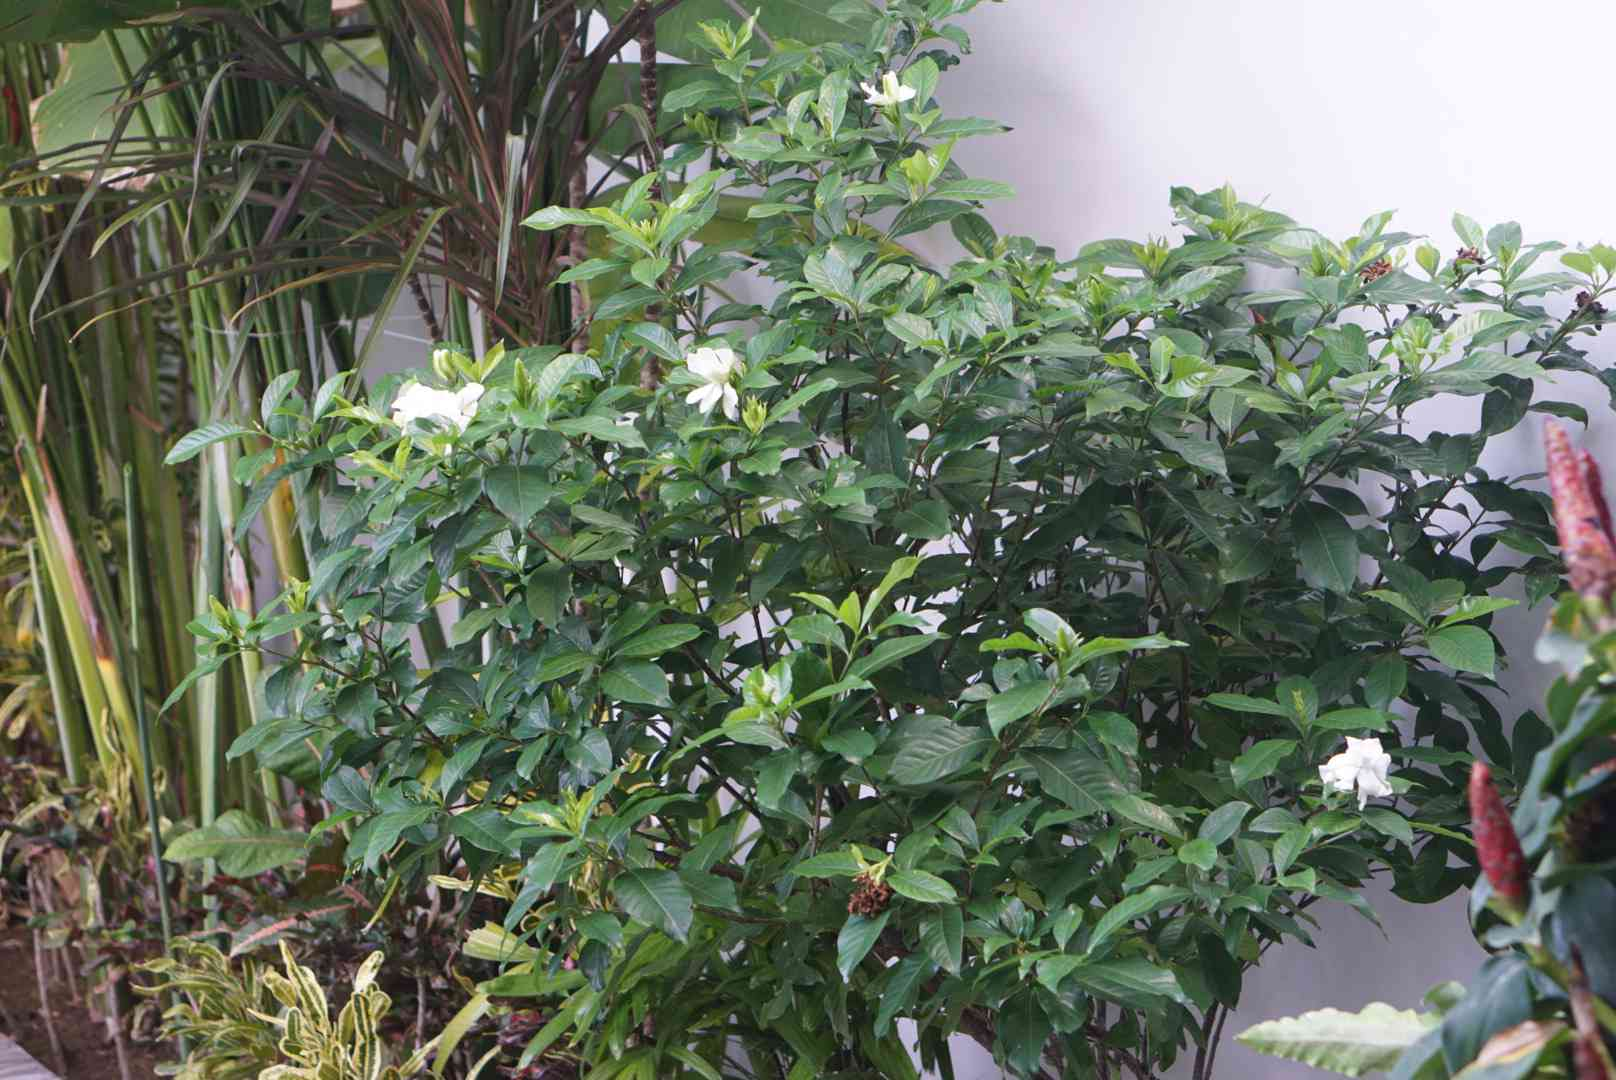 Arabian jasmine shrub with upright branches and small white flowers